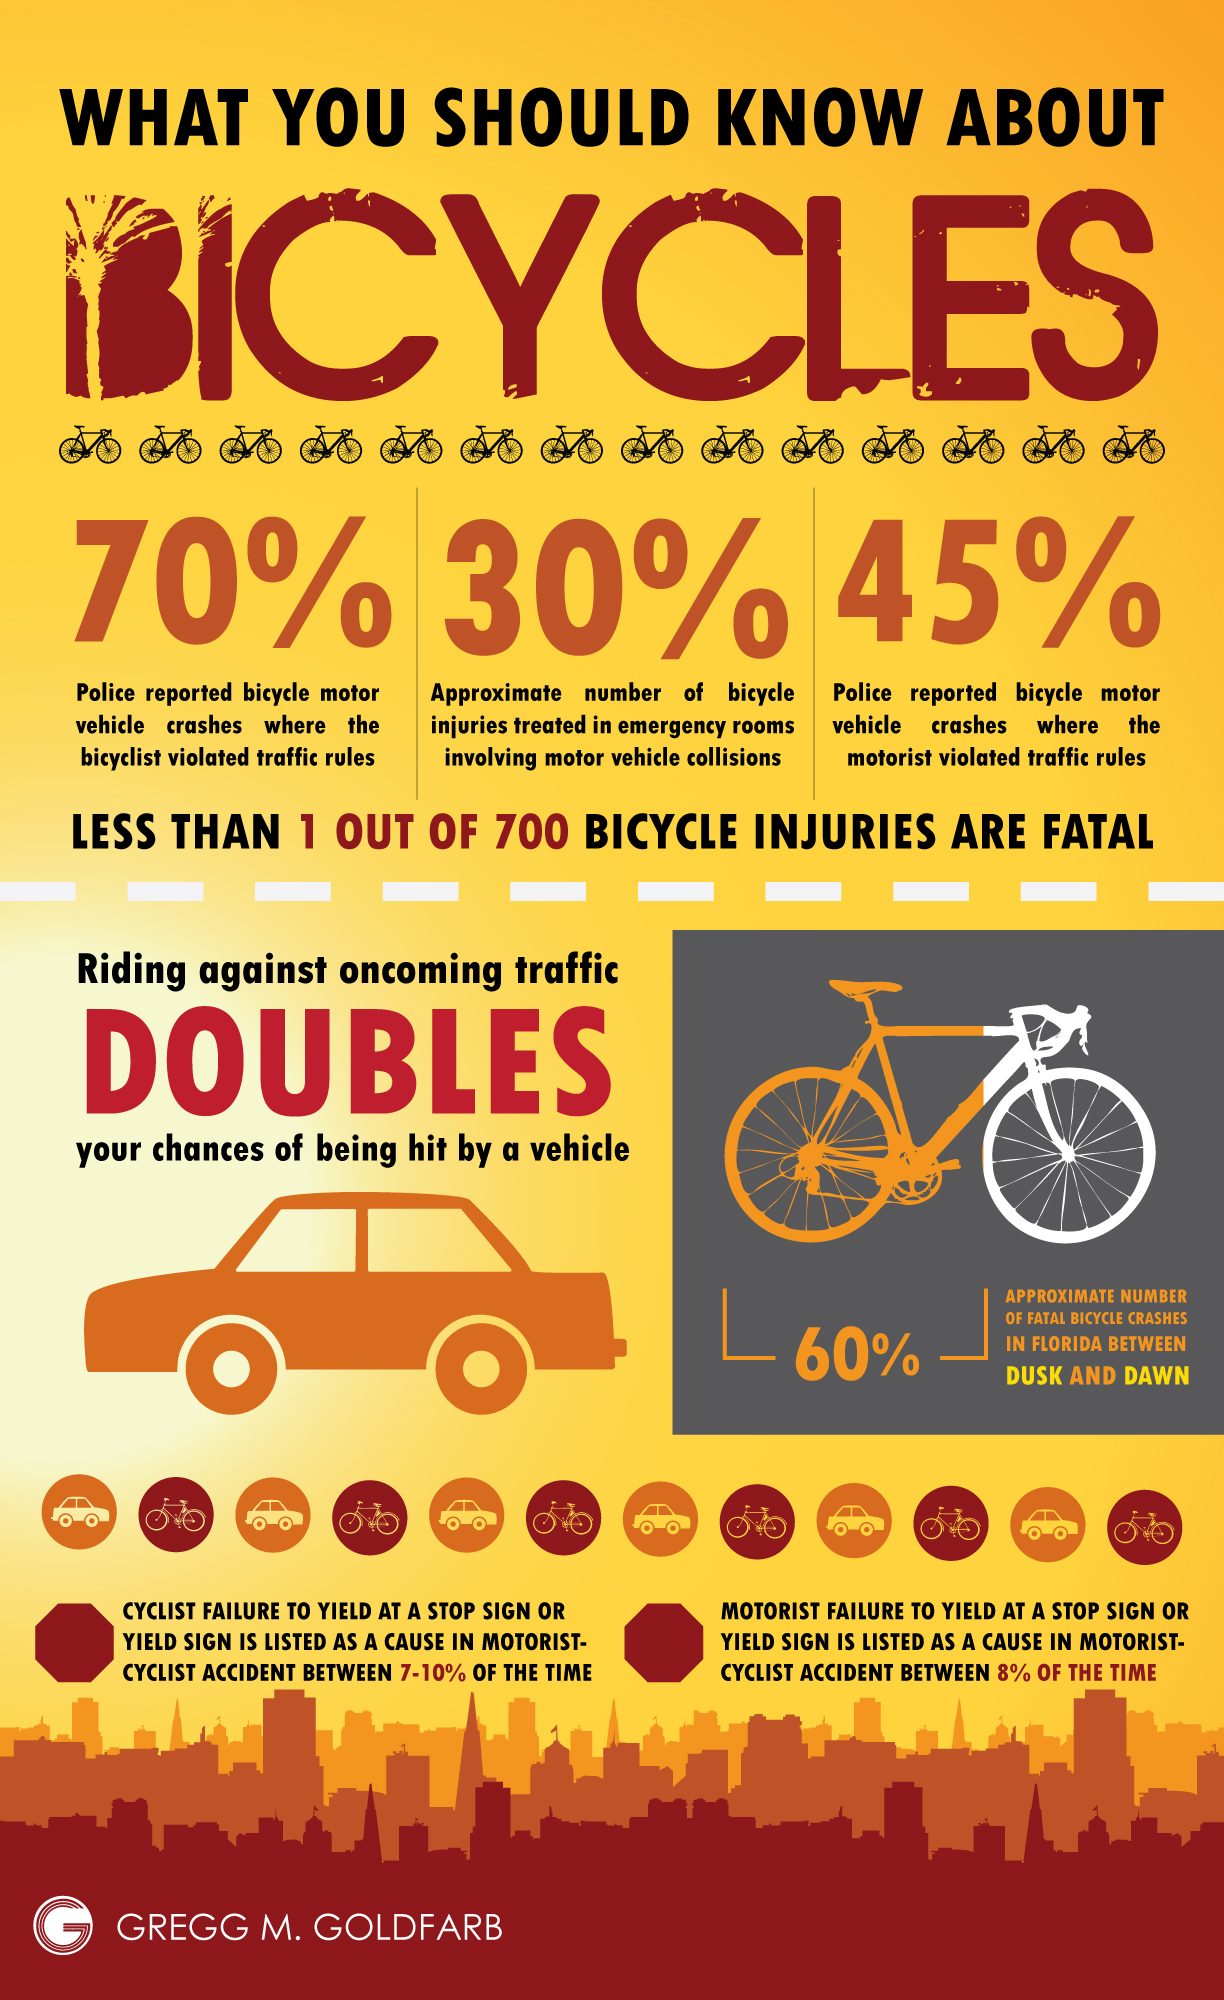 bicycle-infographic.jpg